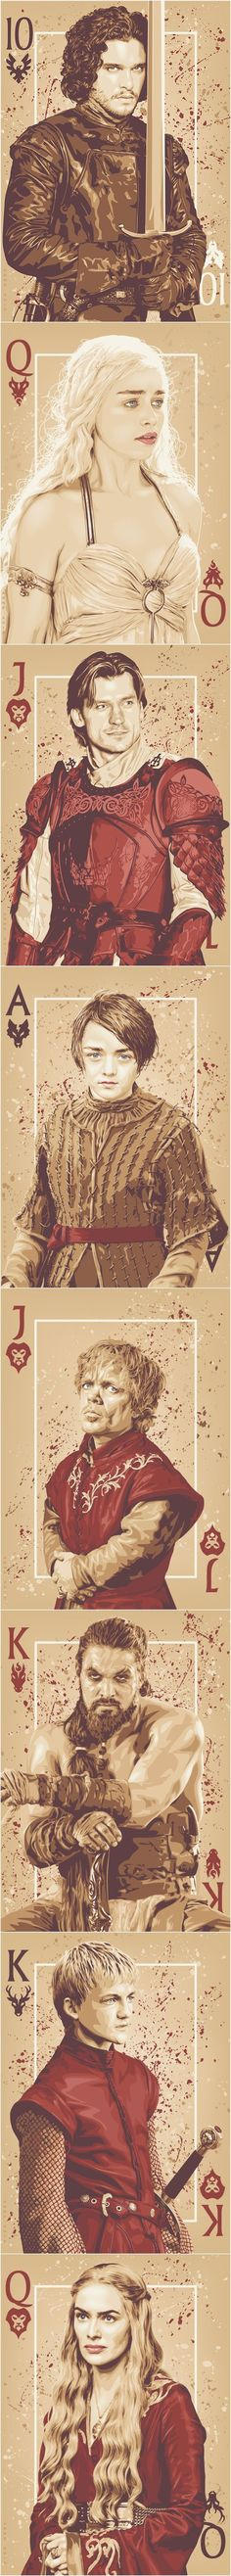 """Cards """"Game Of Thrones"""" By Ratscape:"""